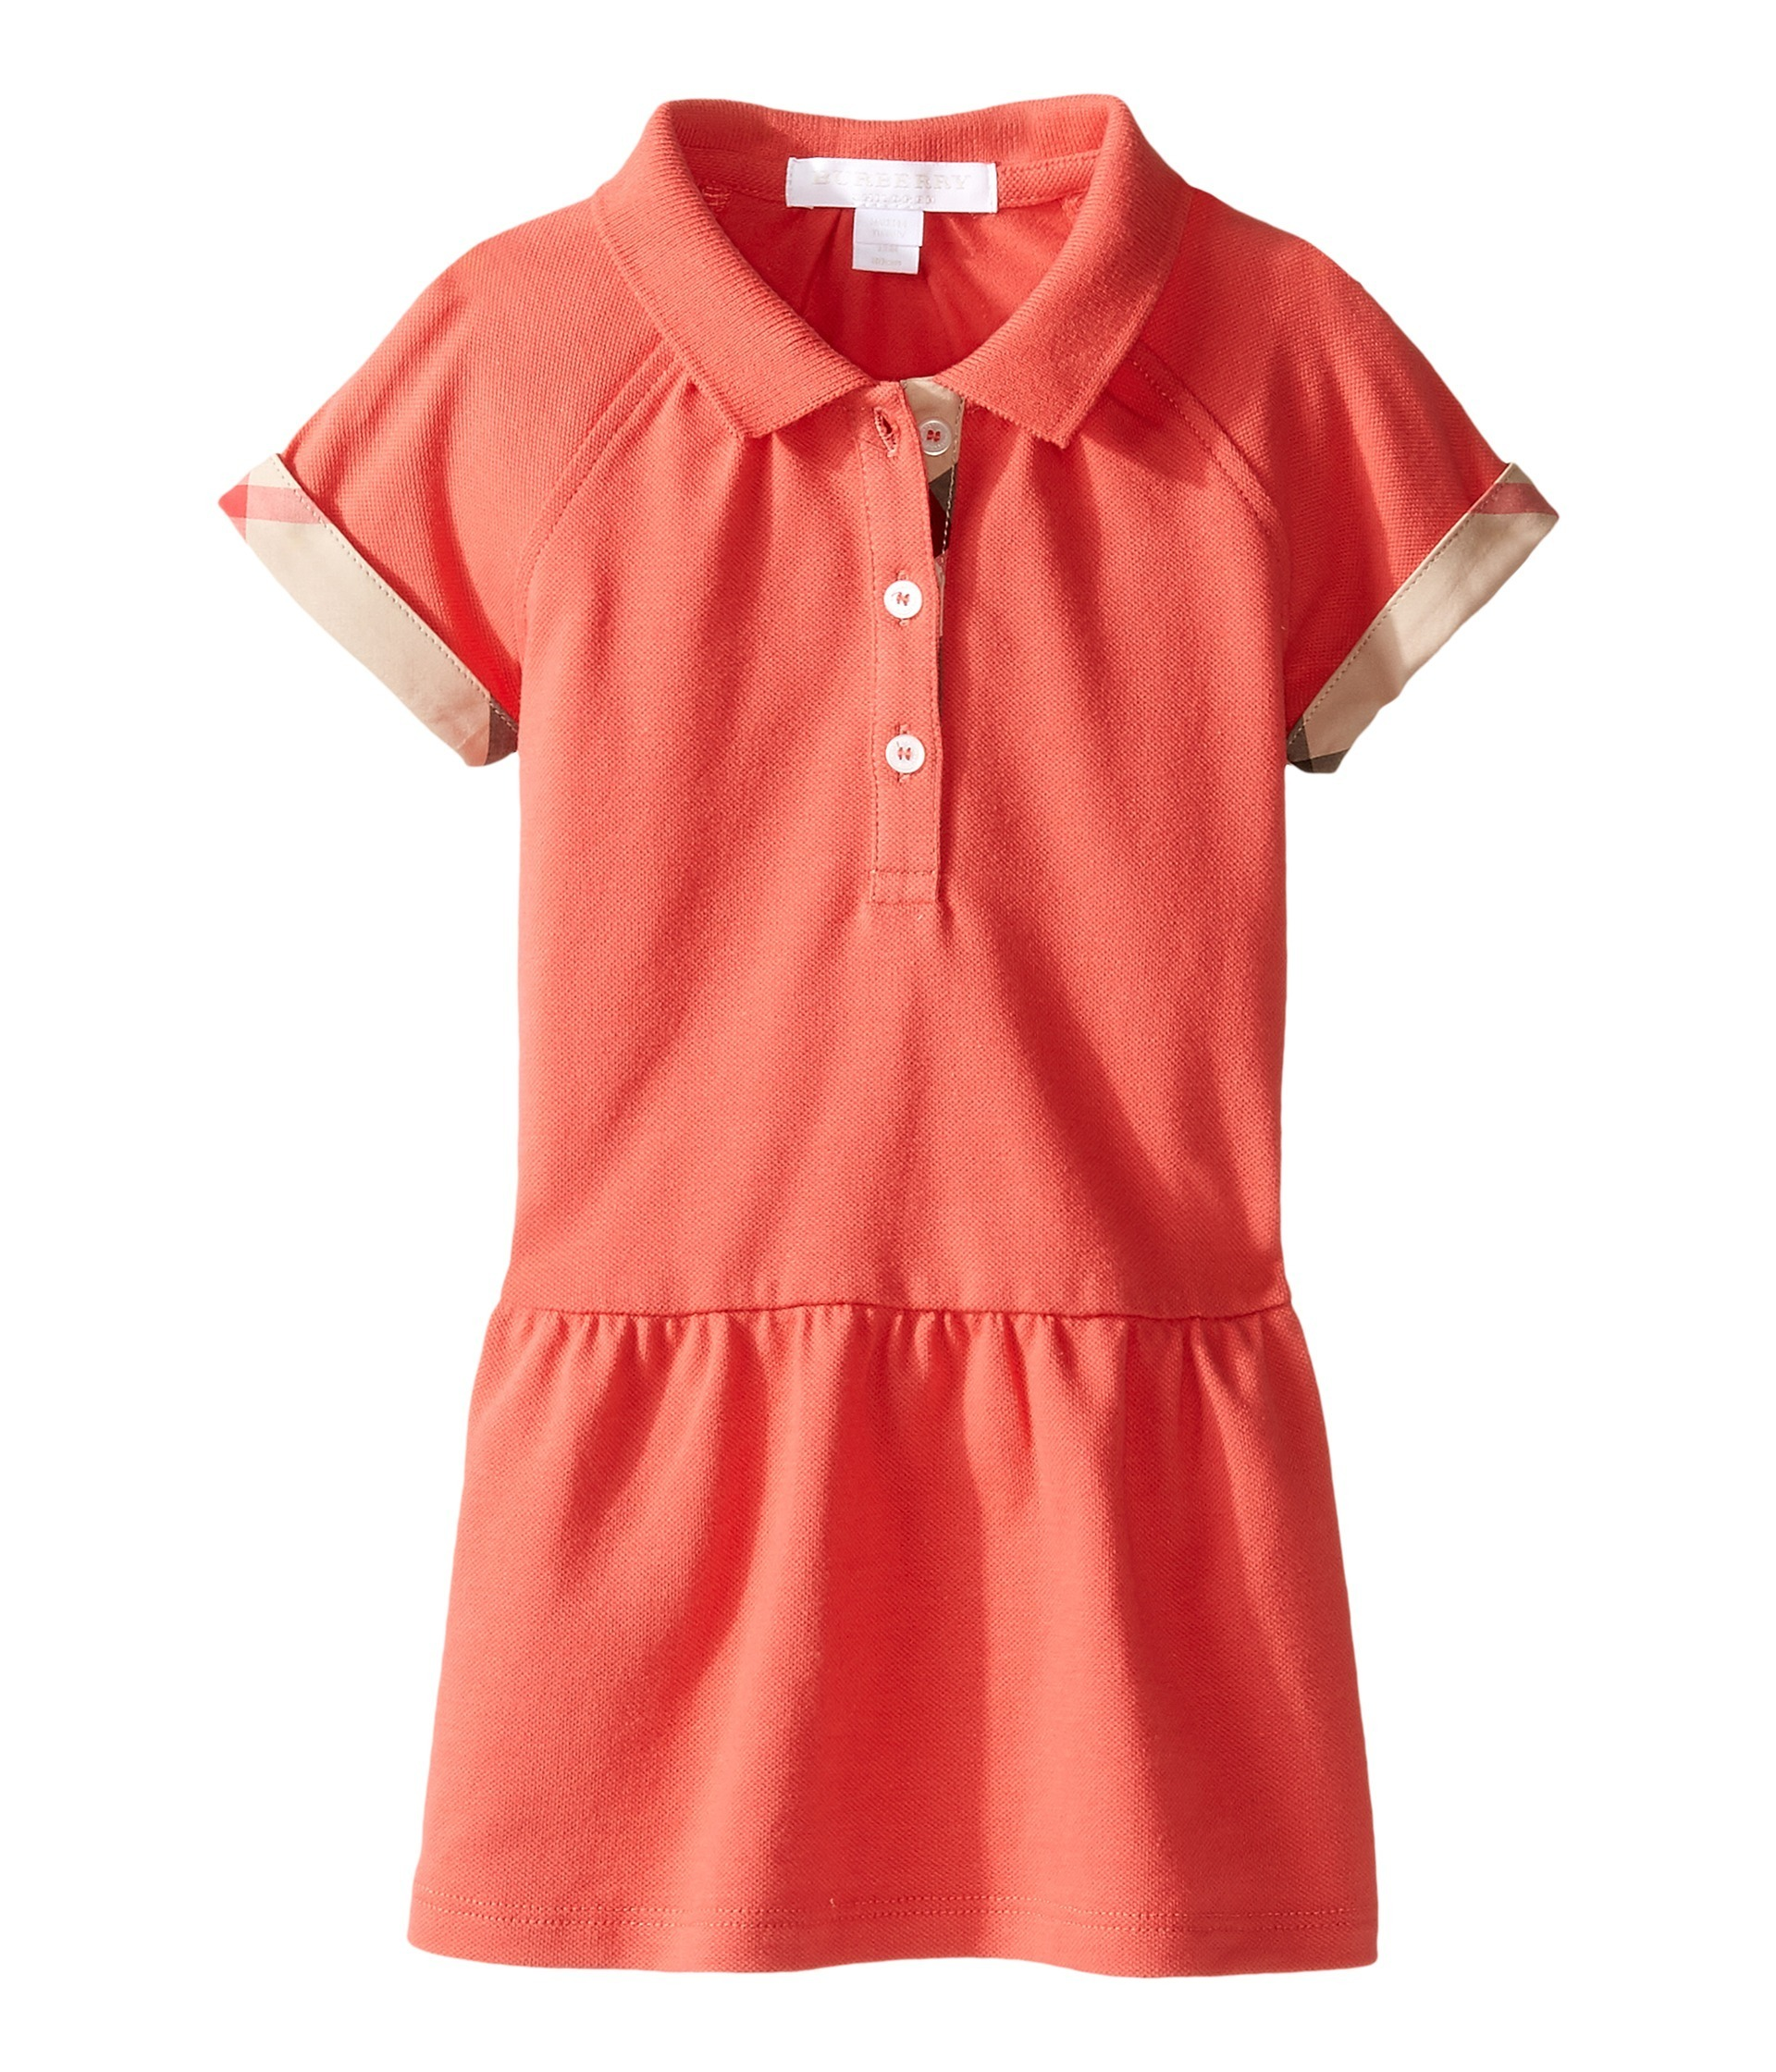 大人もOK!Mini Cali Dress (Infant/Toddler) バーバリーキッズ